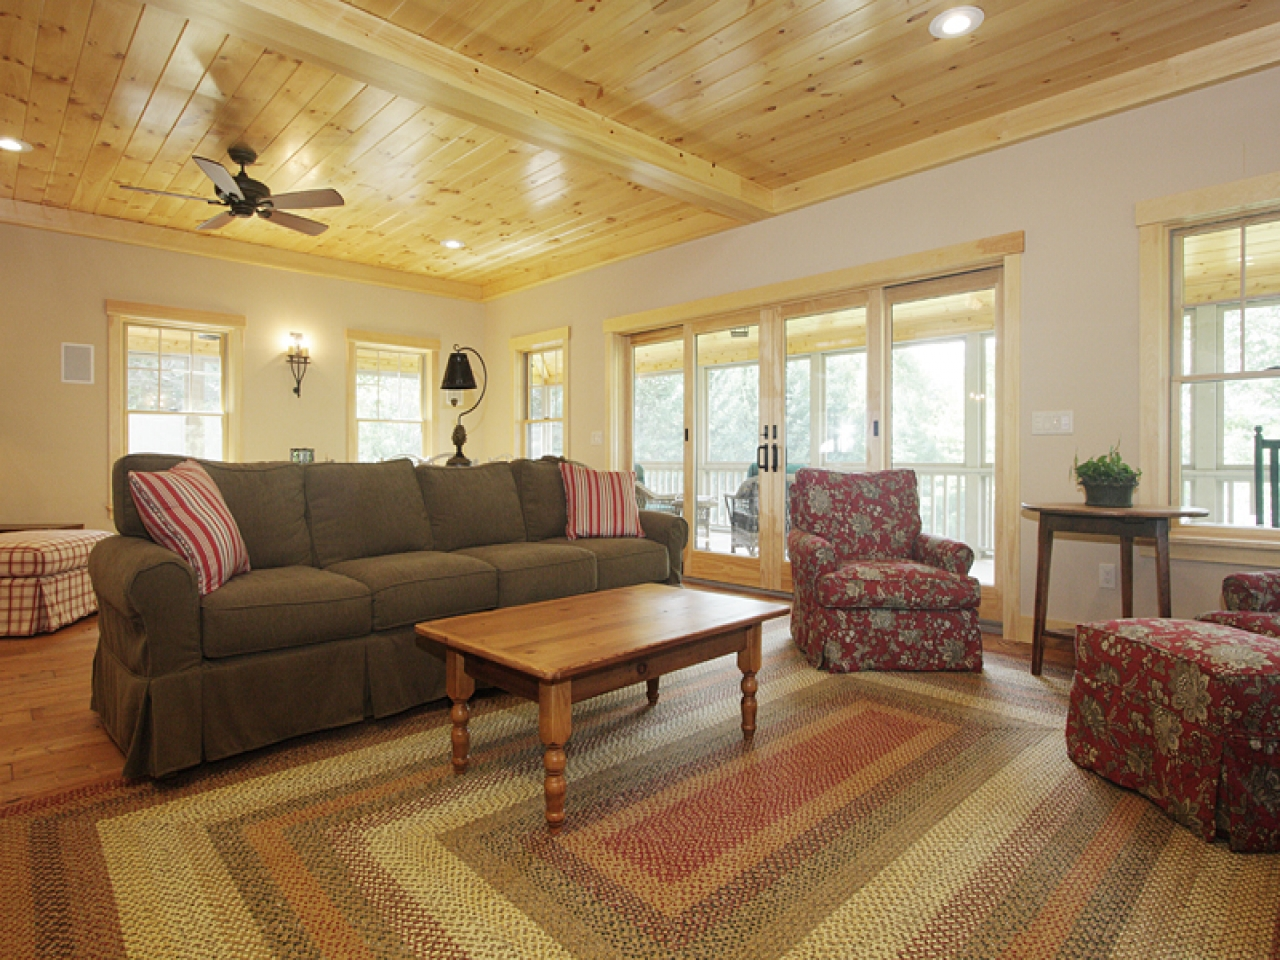 Interior Lake House Decorating Ideas Gallery Of Lake House